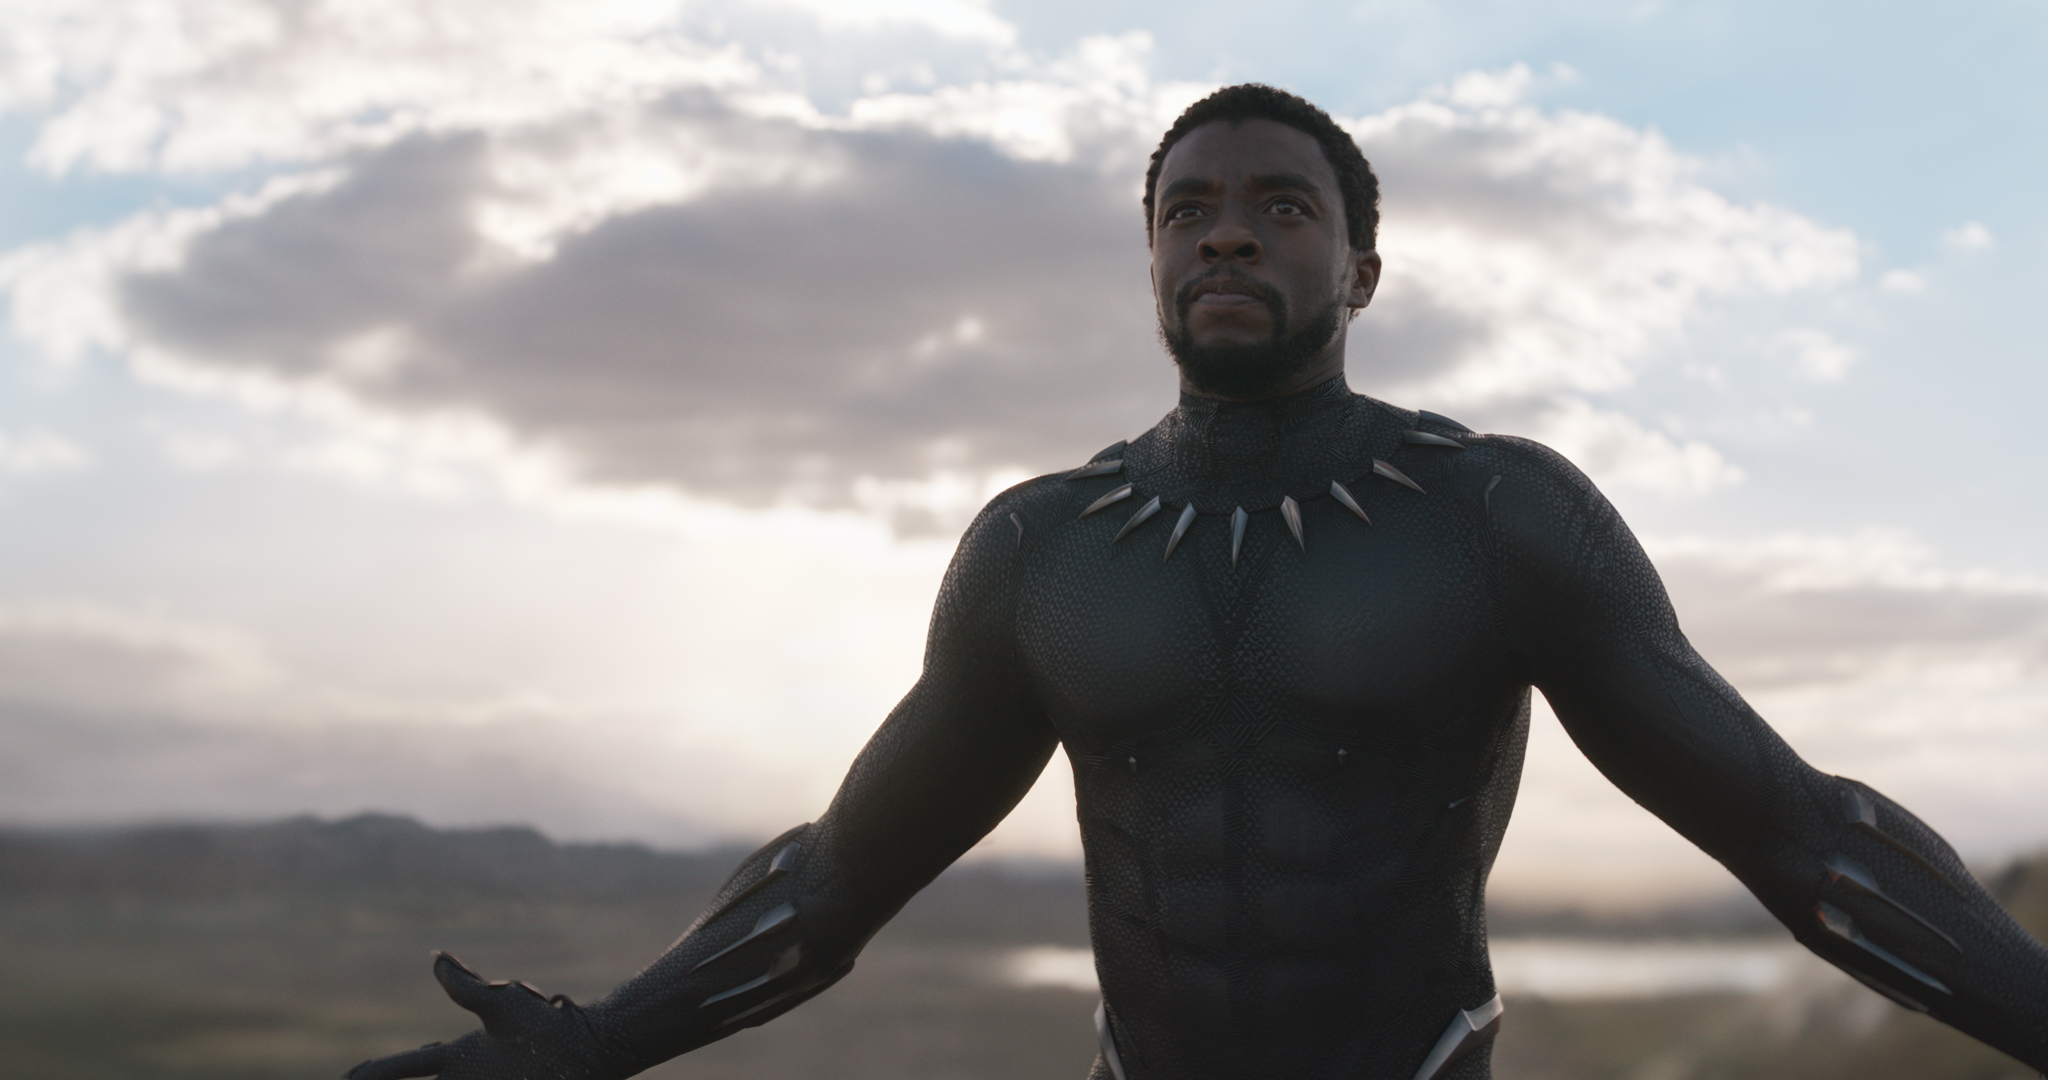 Black Panther is now the biggest moneymaker among superhero movies in the U.S.